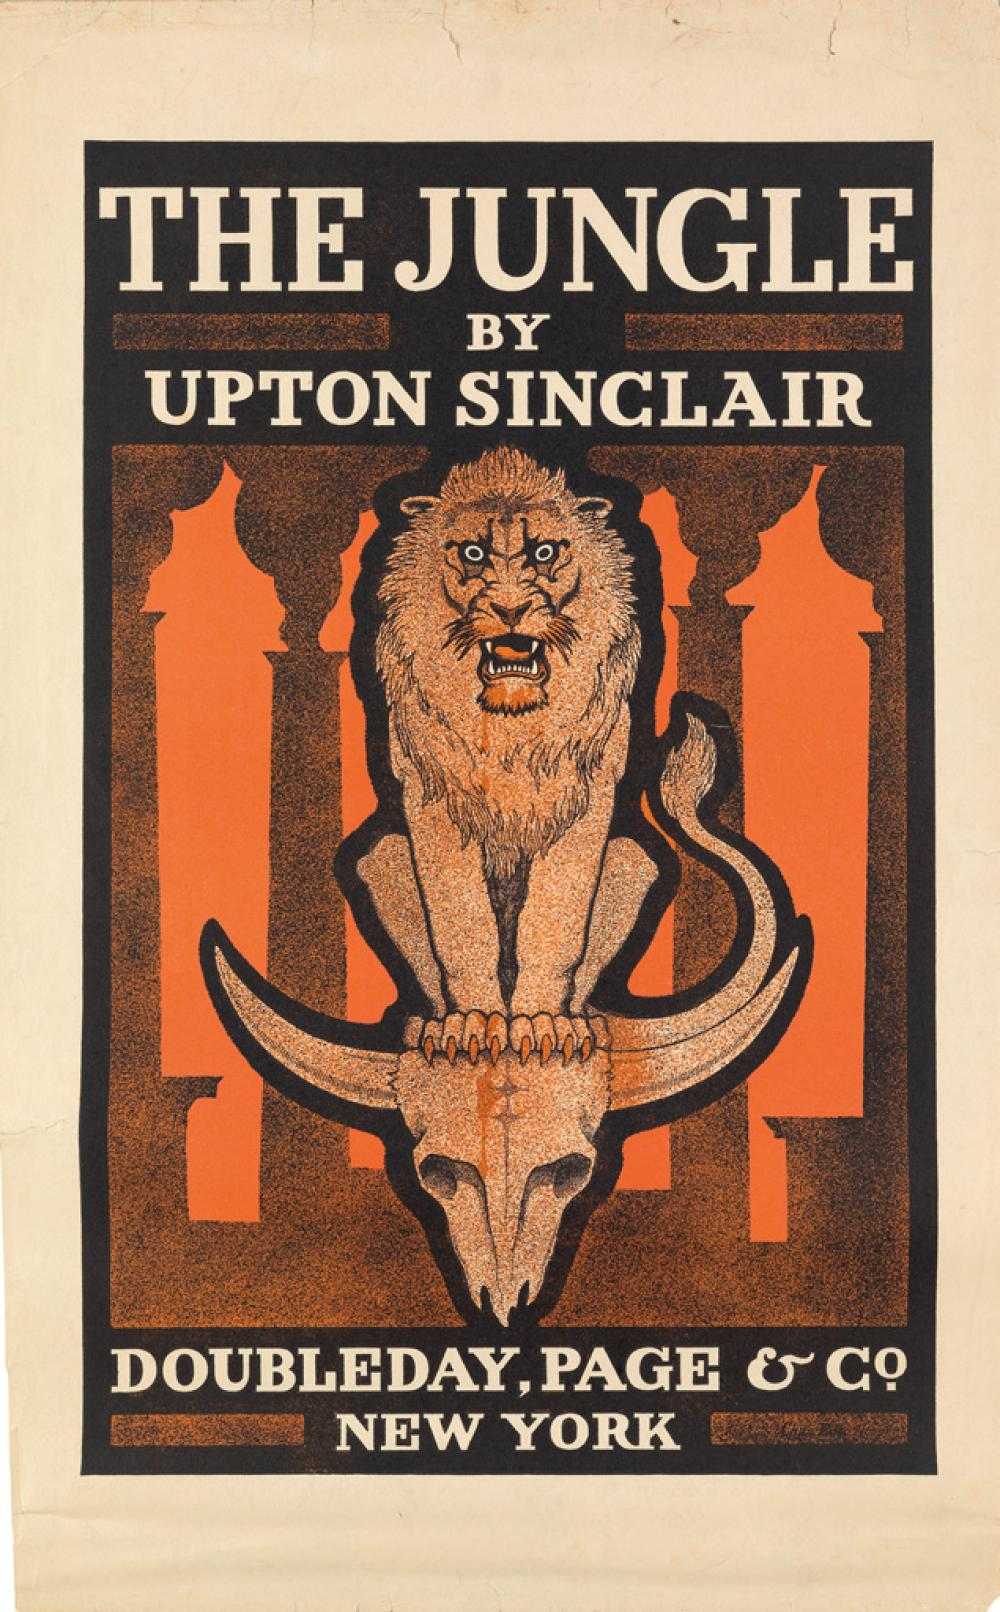 socialism in the jungle by upton sinclair The jungle by upton sinclair home / literature / the jungle /  sinclair wrote the jungle to promote a very specific socialist agenda the whole point of this look at working conditions in chicago's slums is to make you want to organize with other workers in support of the socialist cause.